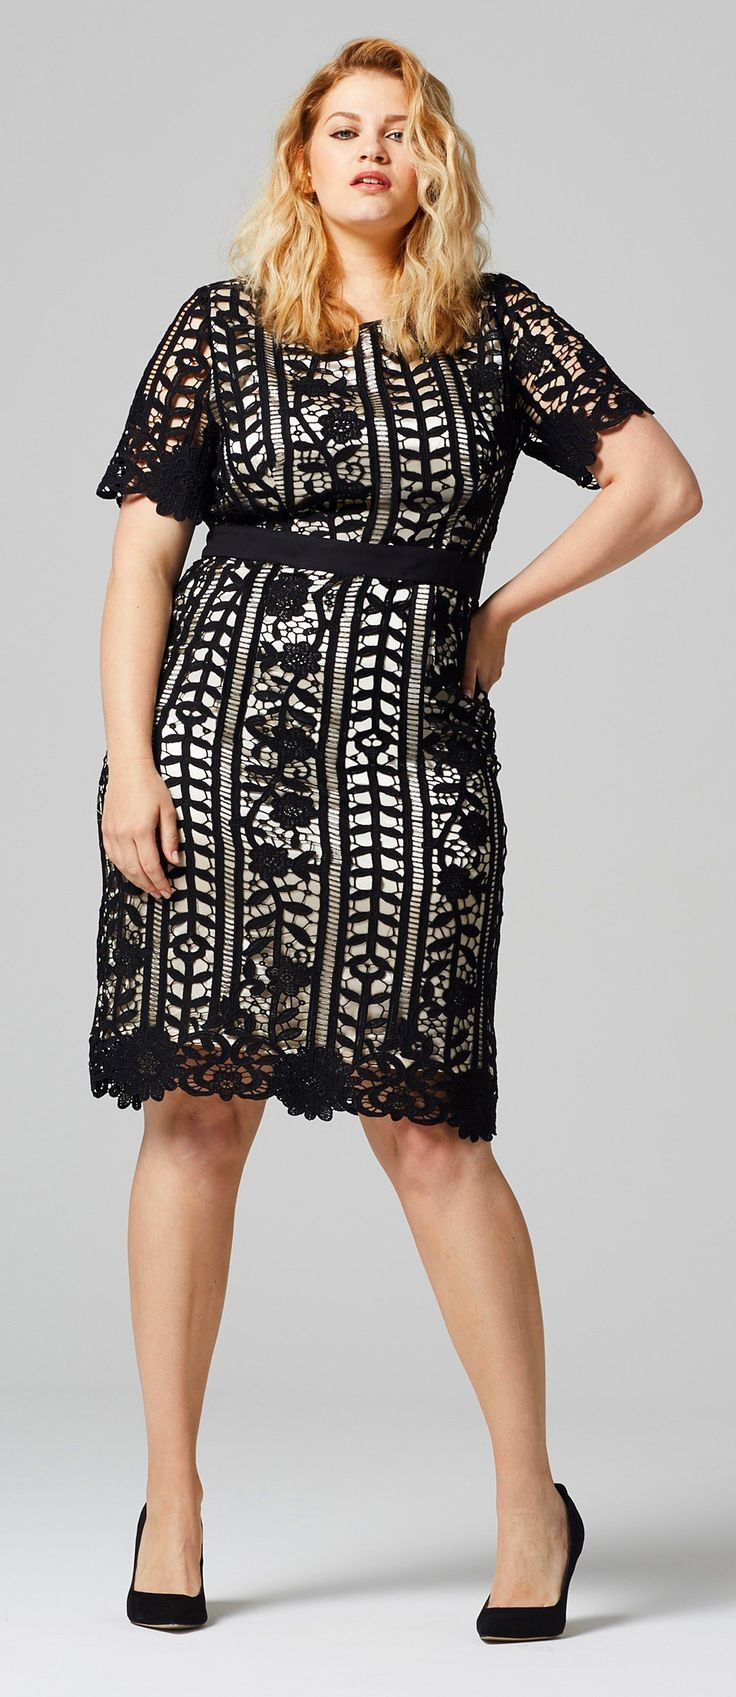 45 Plus Size Wedding Guest Dresses With Sleeves Alexa Webb Plus Size Outfits Guest Attire Wedding Attire Guest